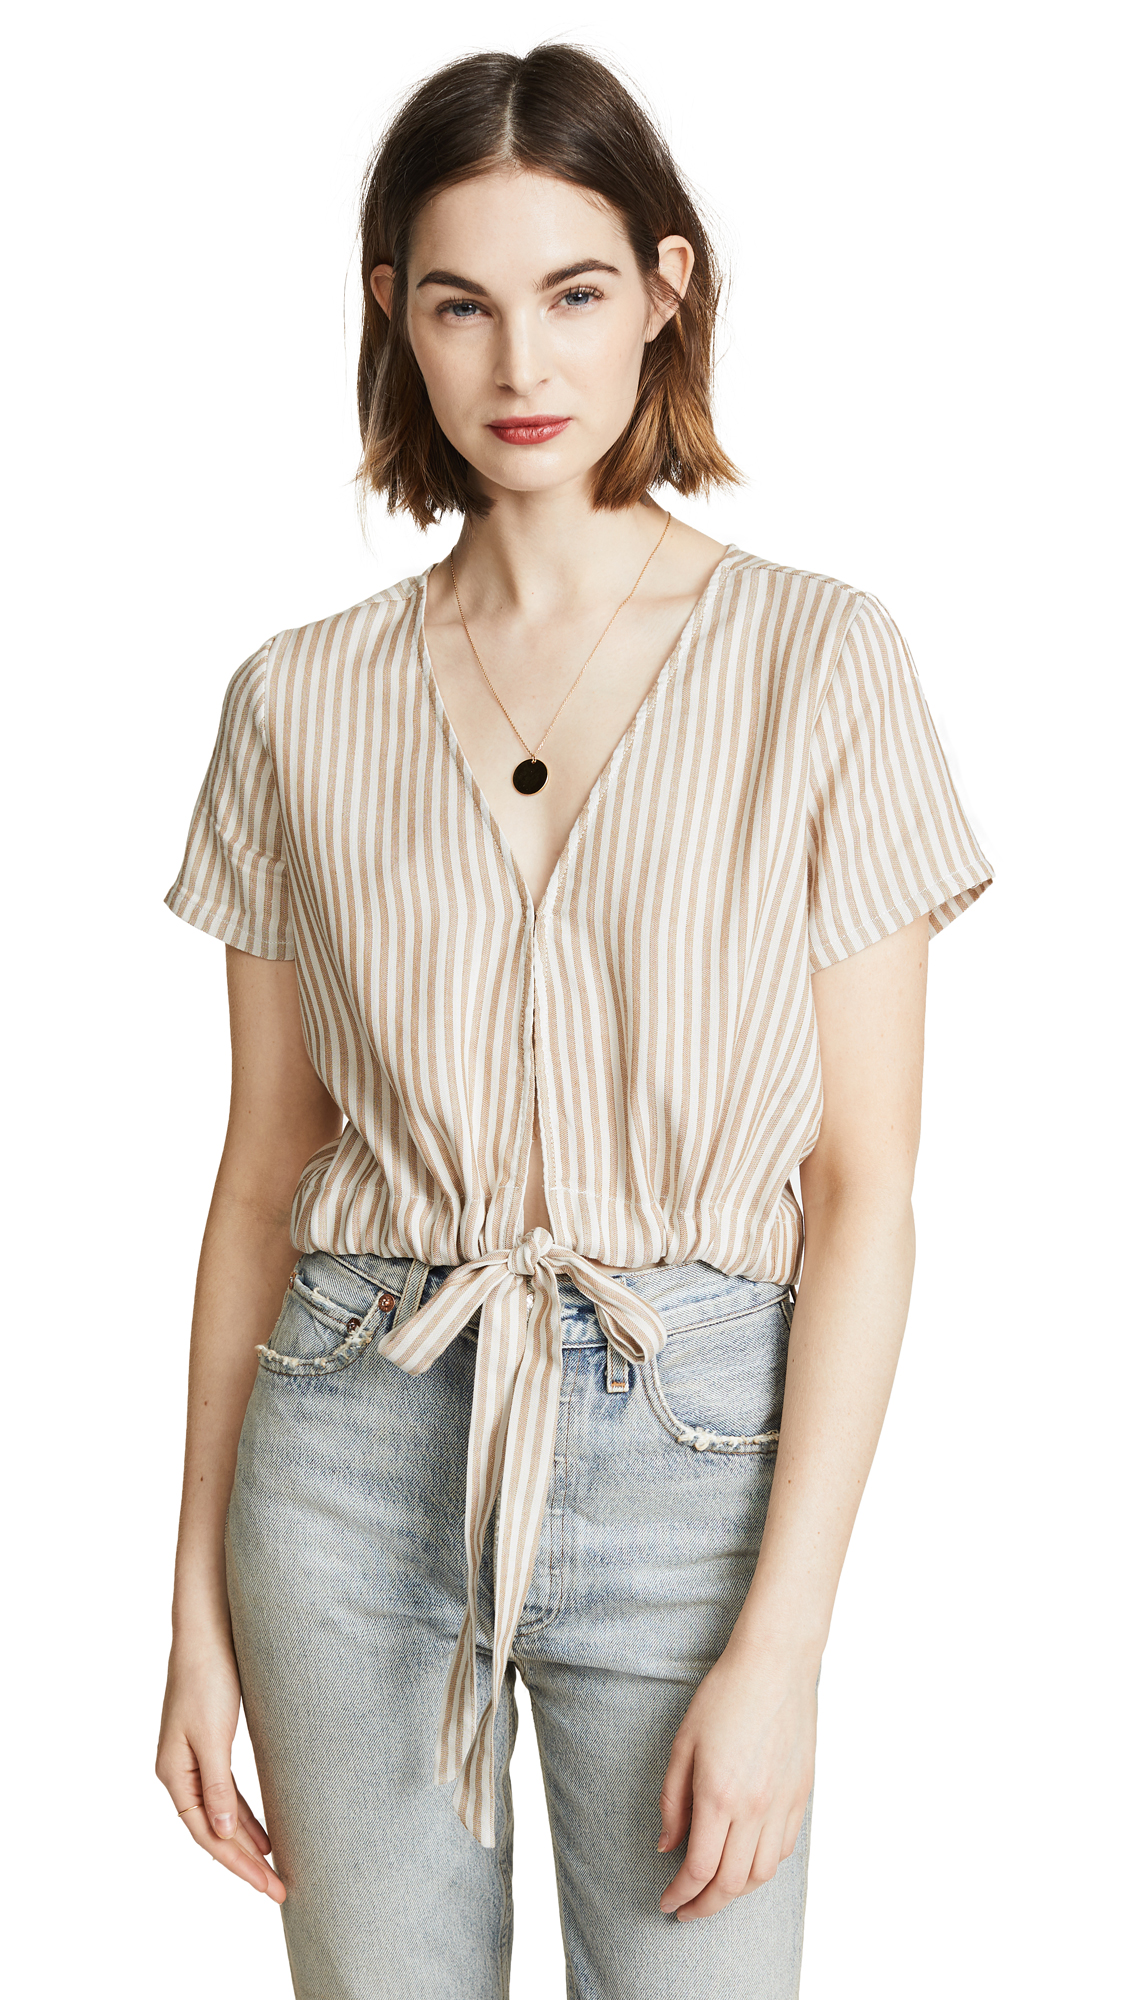 Knot Sisters Barcelona Top In Straw